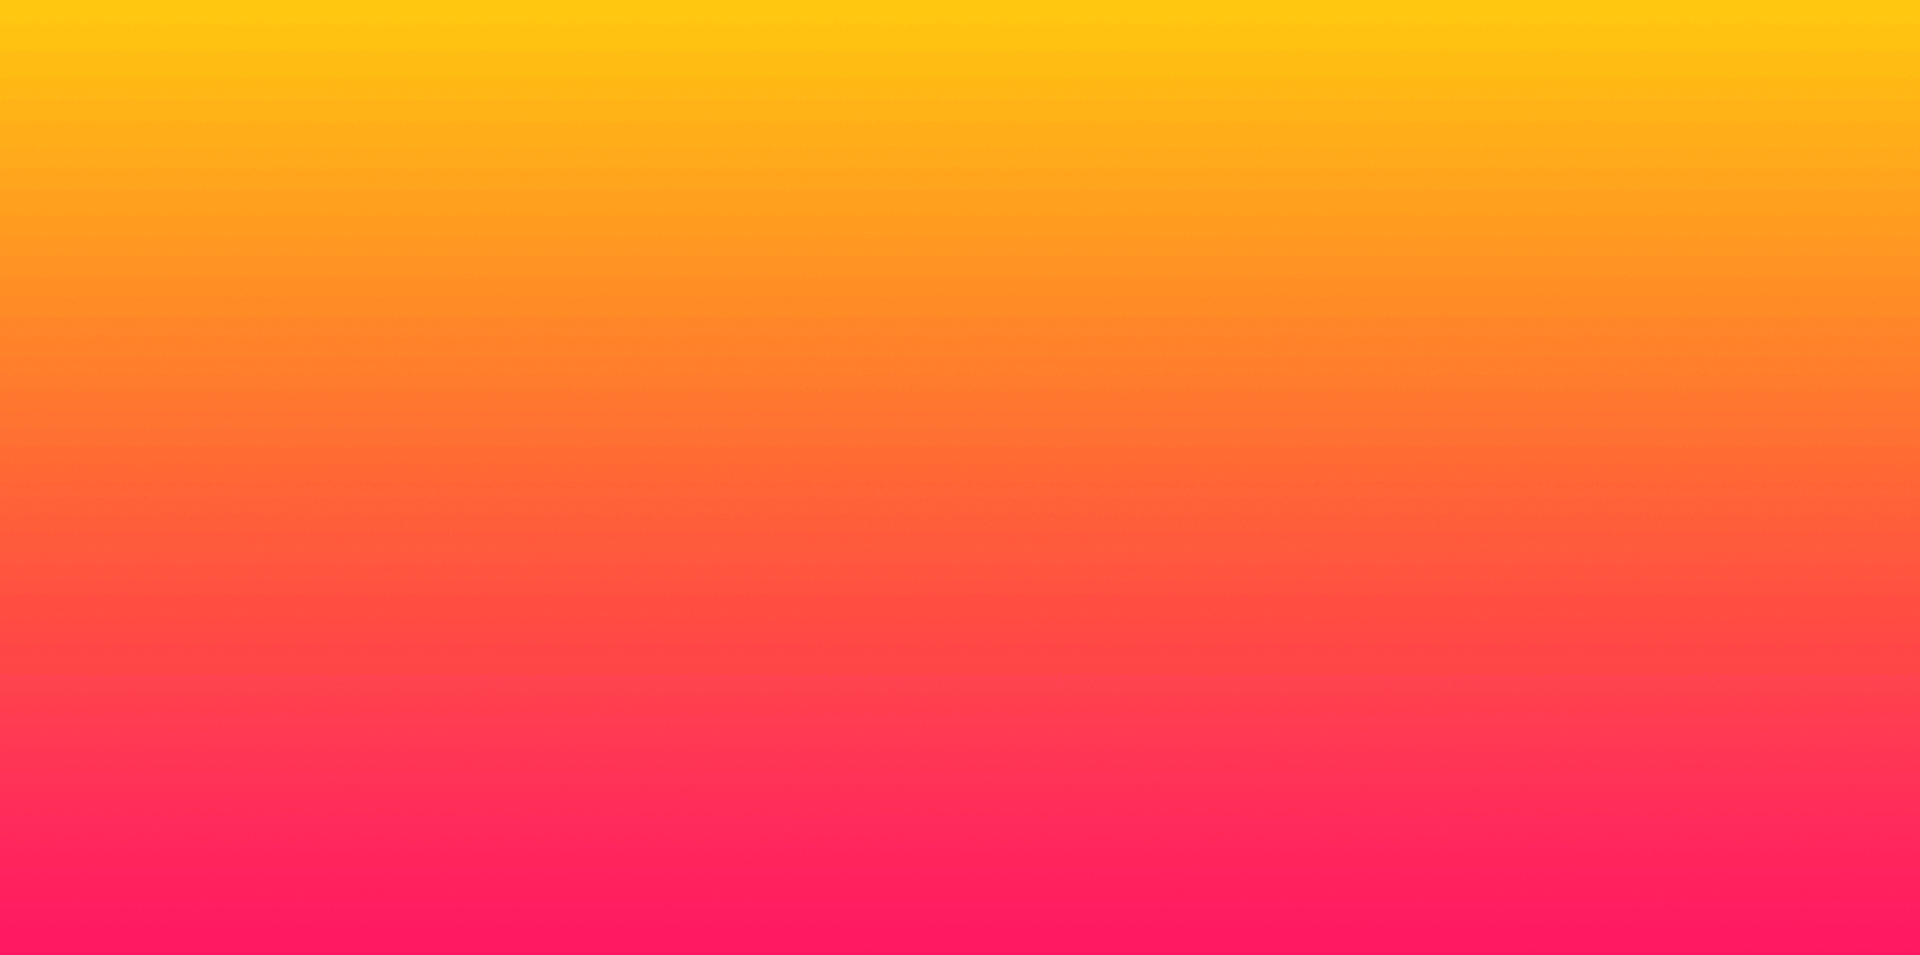 Orange Magenta Gradient Mix Free Images At Clker Com Vector Clip Art Online Royalty Free